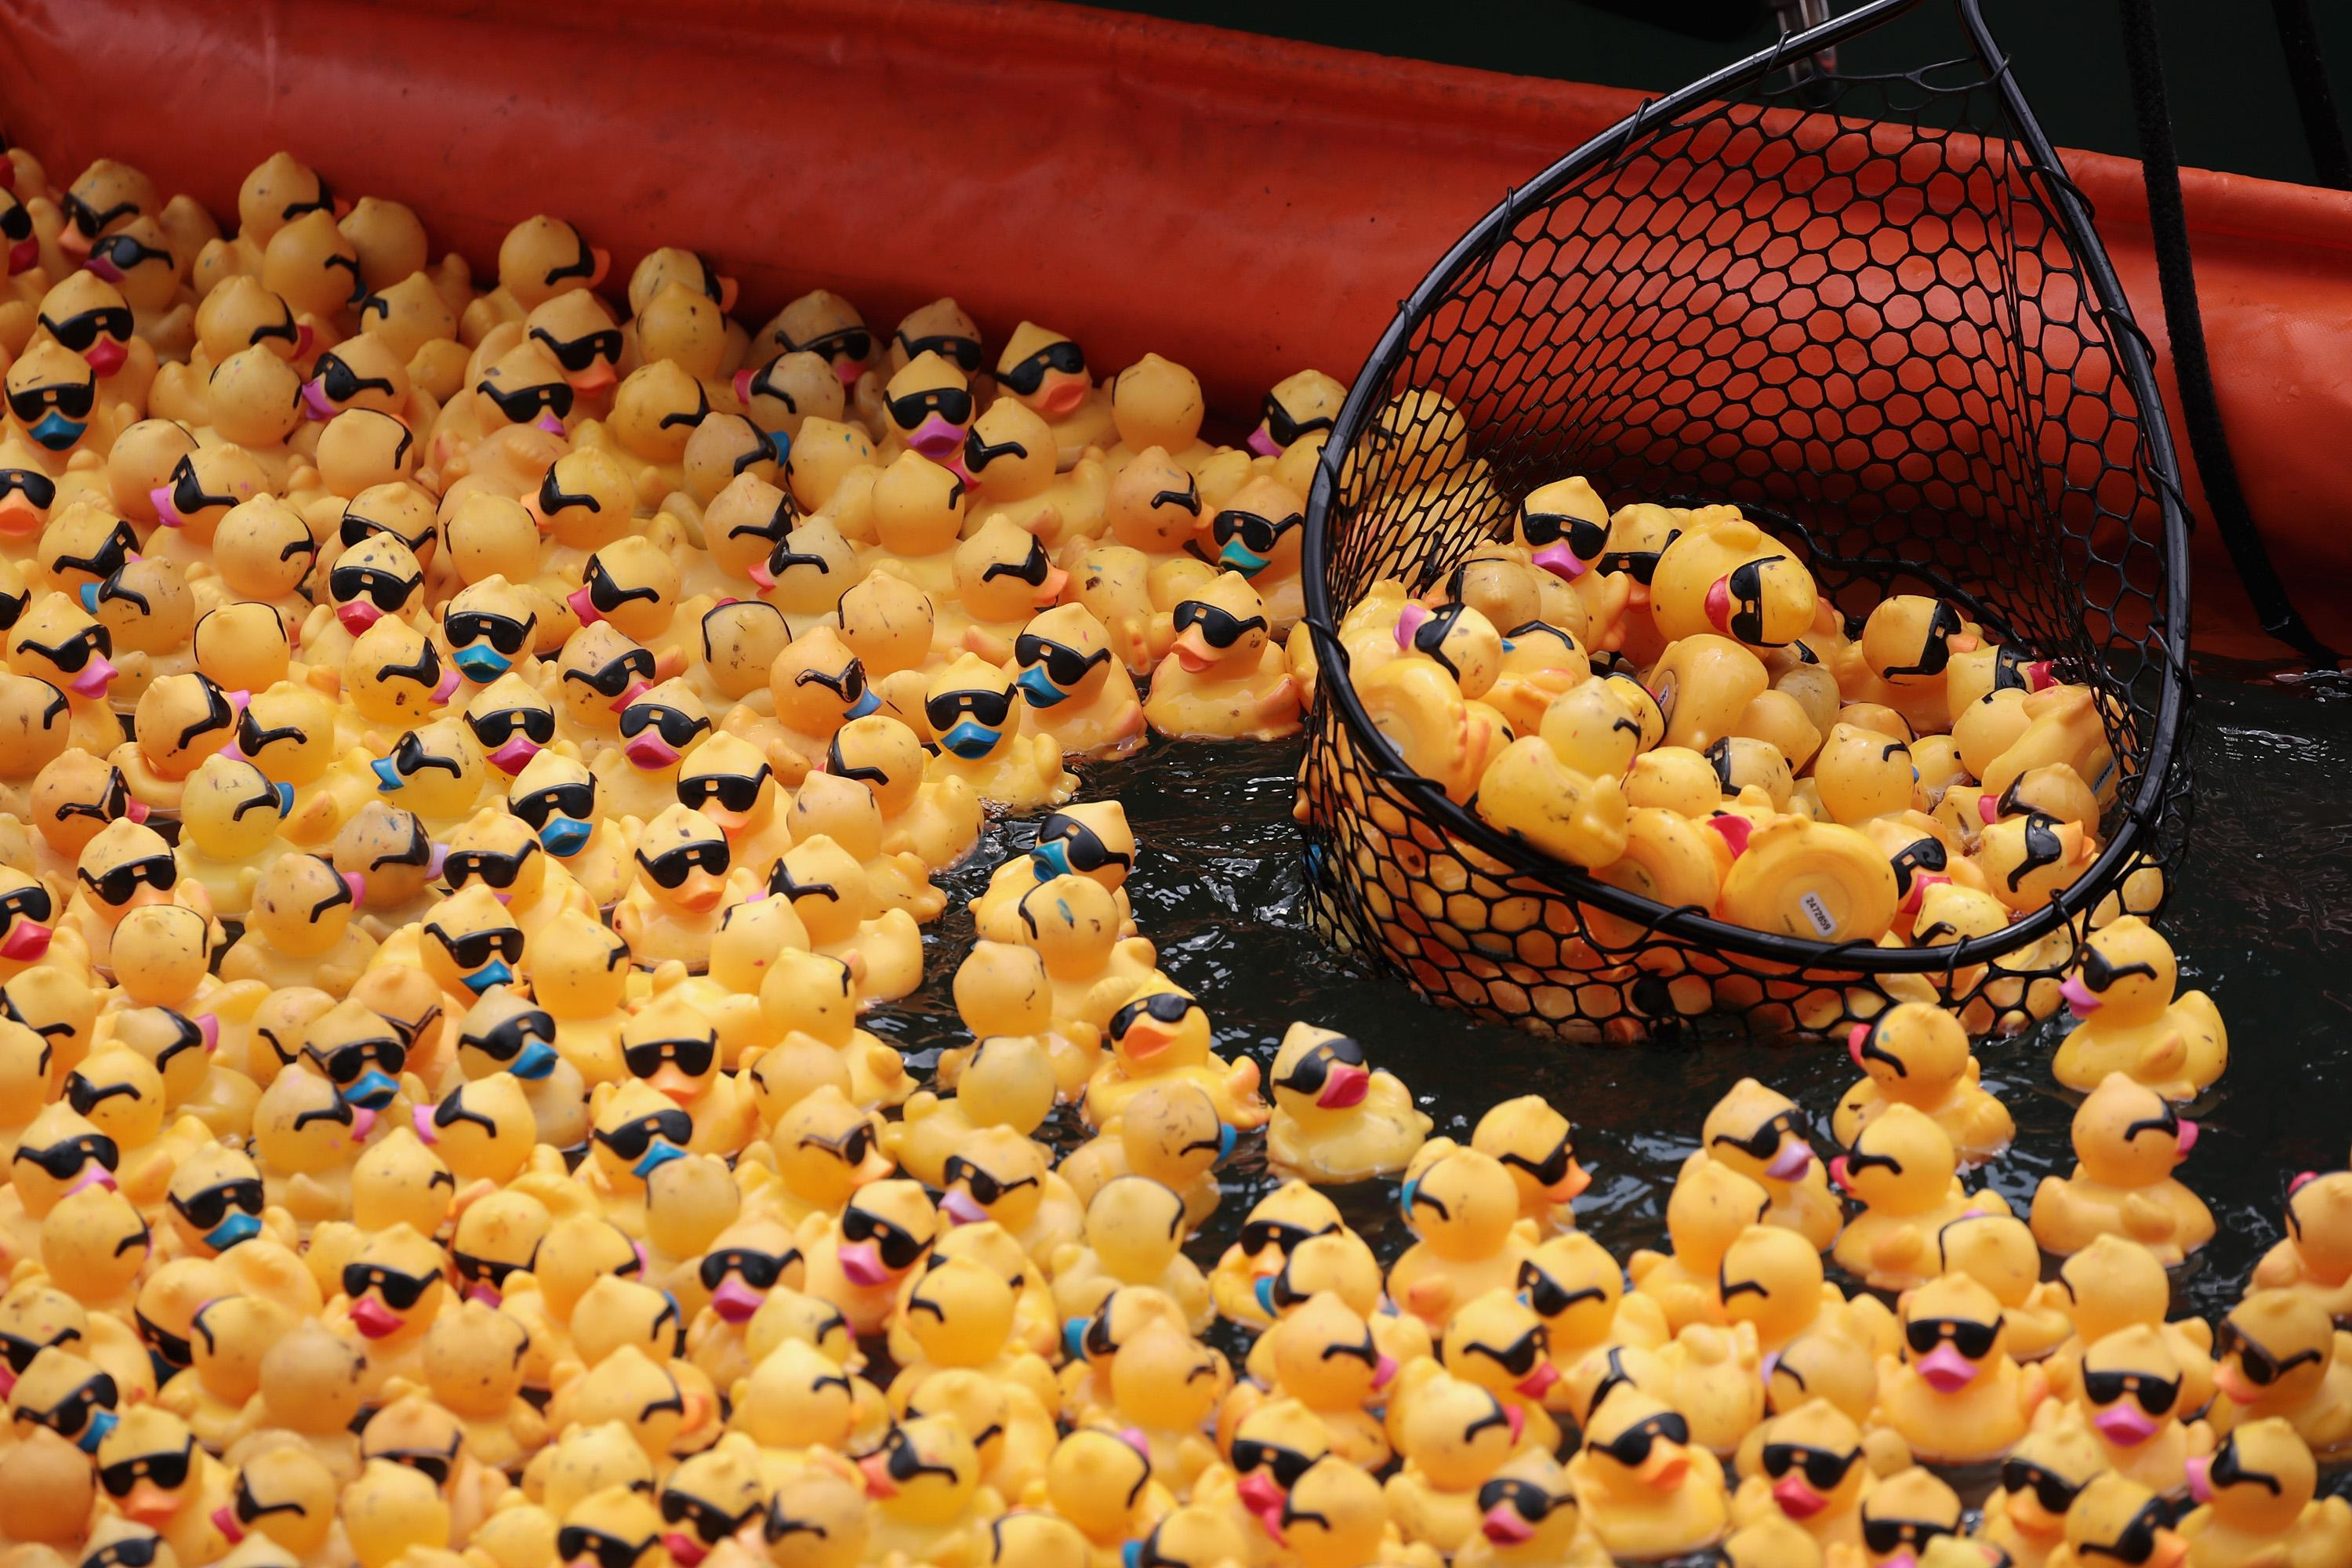 Dozens and dozens of yellow rubber ducks wearing sunglasses